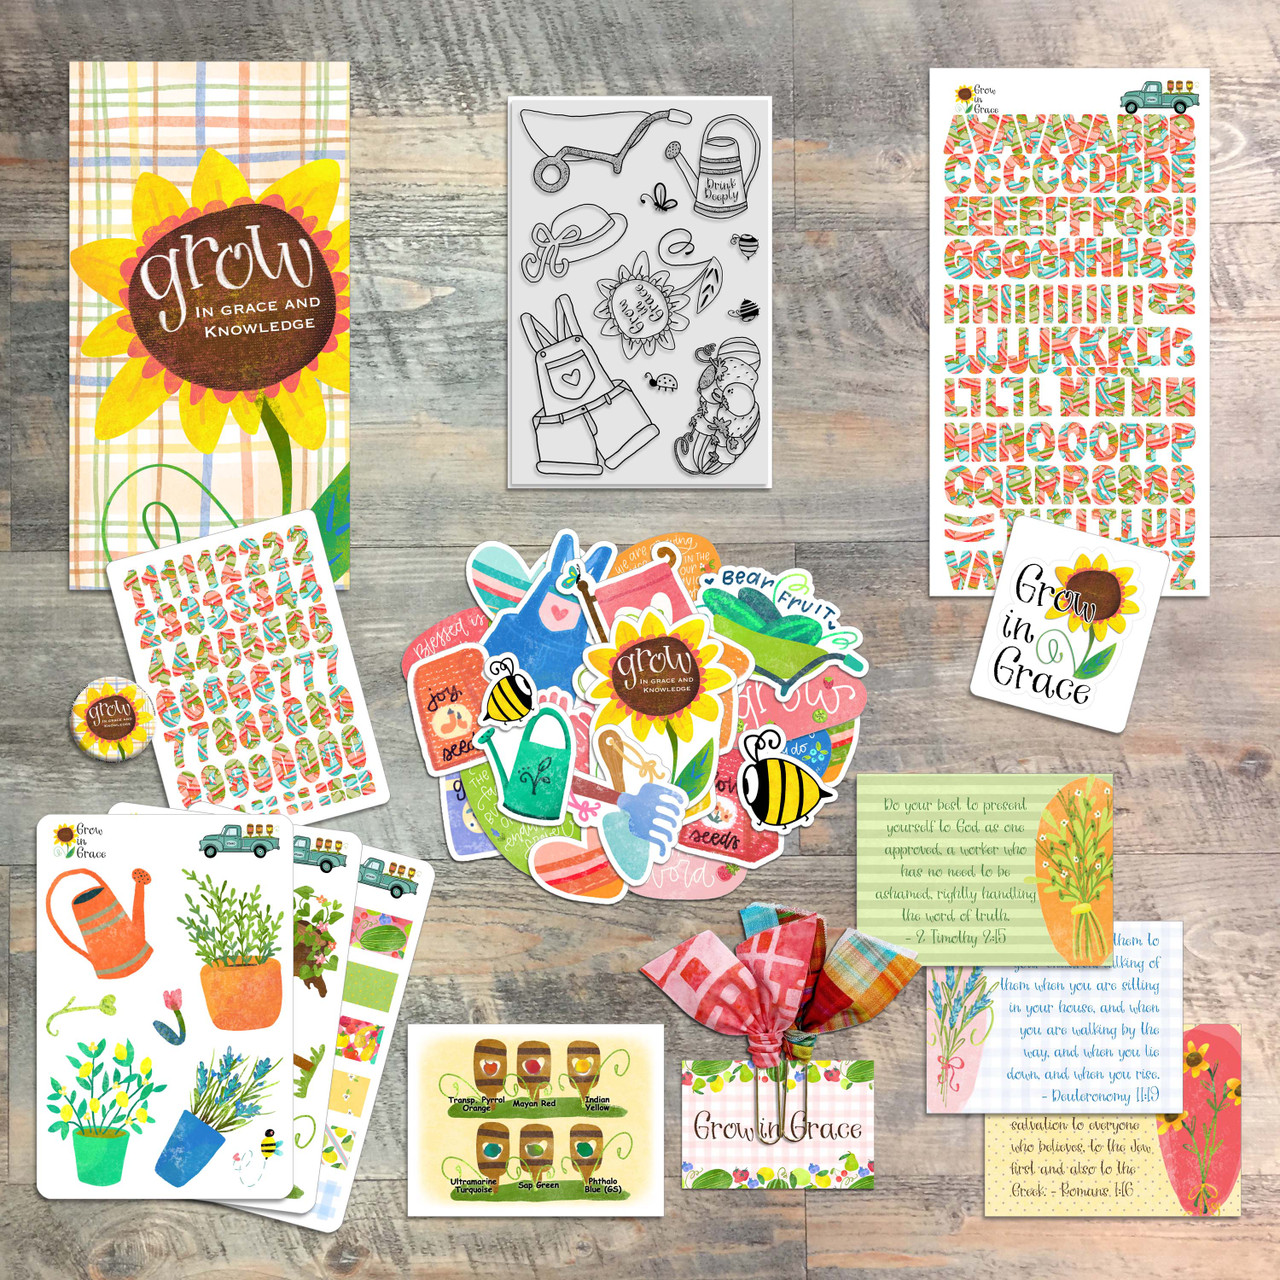 Grow in Grace, by Christina Lowery - Devotional Kit for Bible Journaling